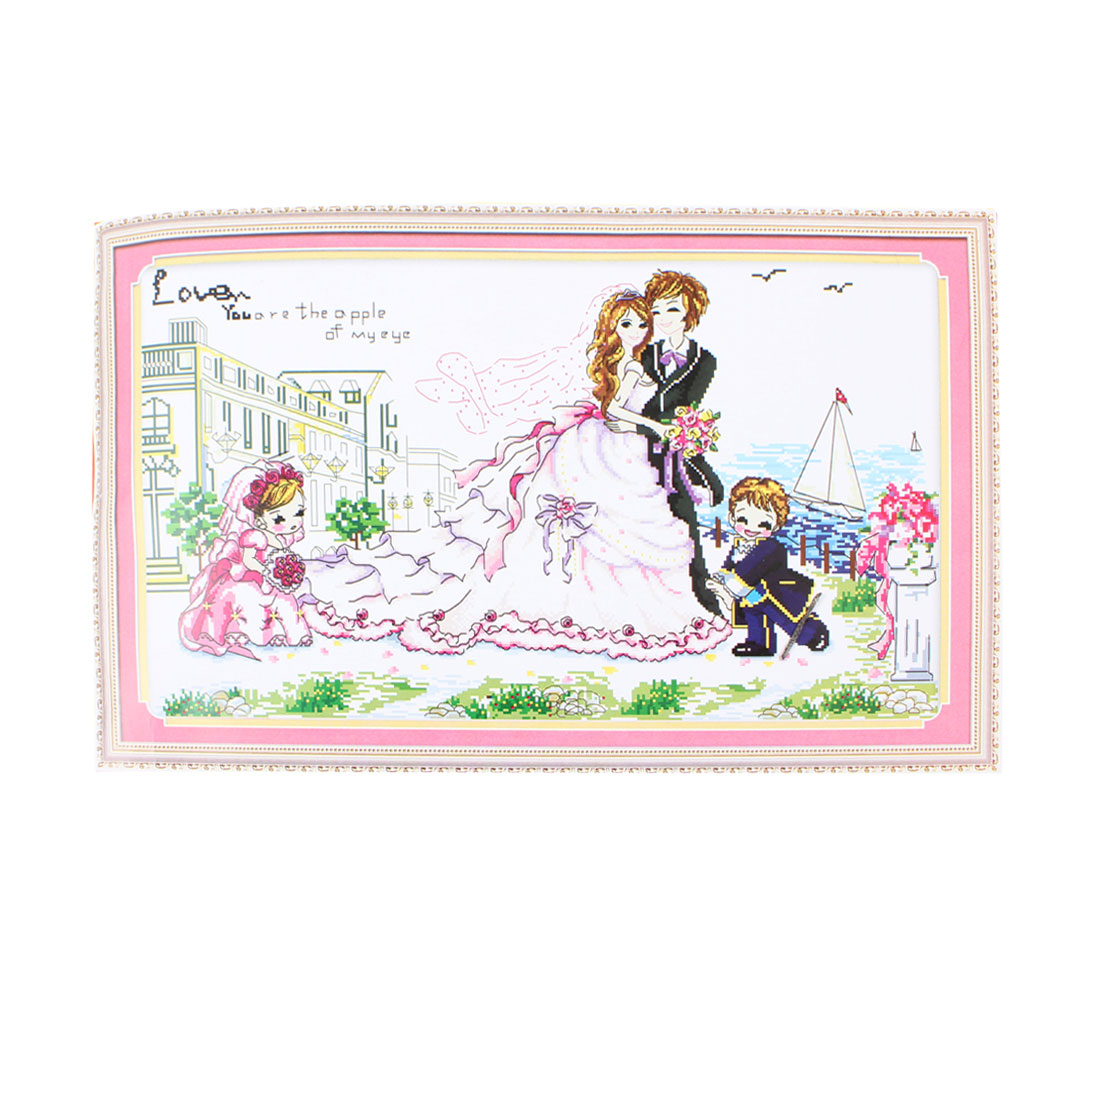 Handwork Stamped Cross Stitch Bride Groom Kids Pattern Design Counted Kit